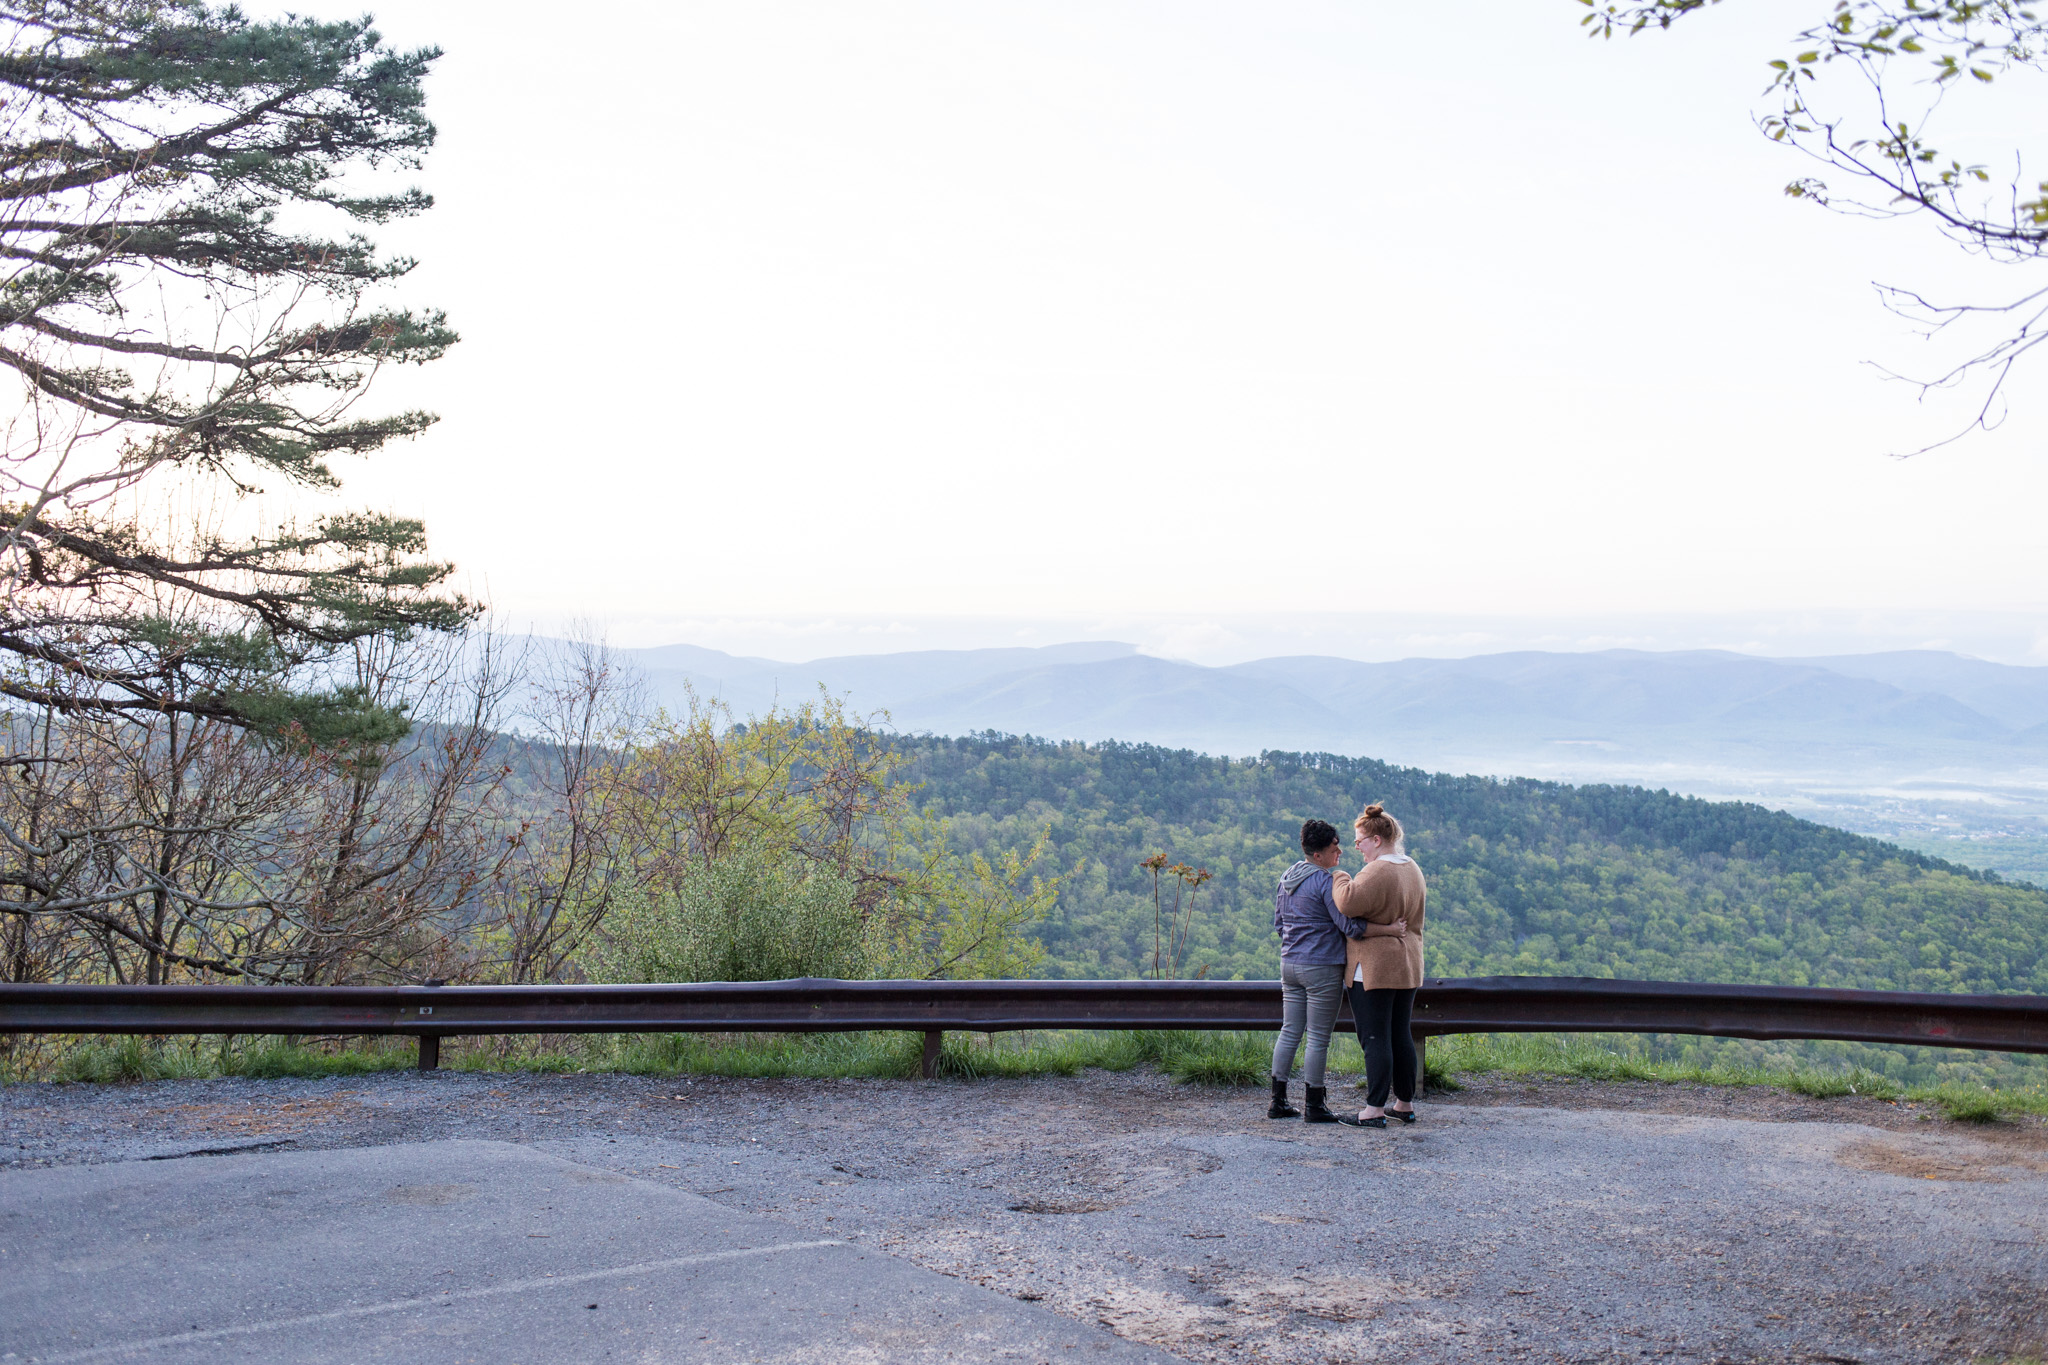 LightCreative_201904_AlexanBecky_Raleigh_Proposal_Photography_021_blog.jpg